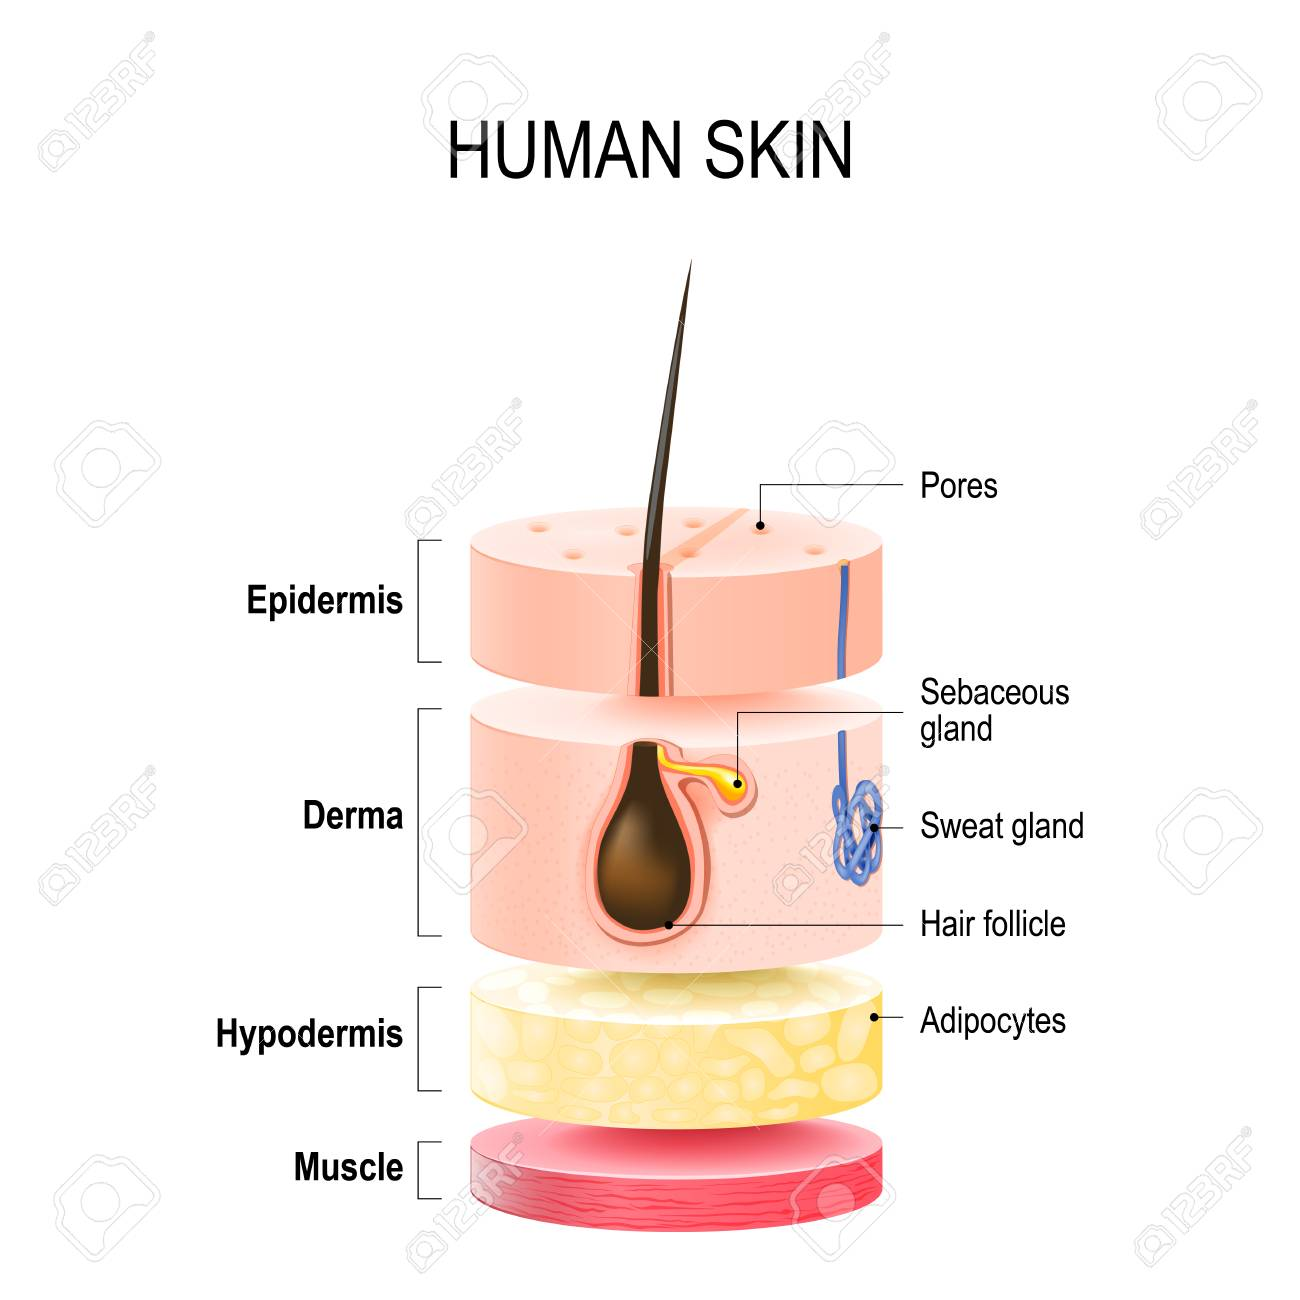 Layers Of Human Skin with hair follicle, sweat and sebaceous glands. Epidermis, dermis, hypodermis and muscle tissue. Vector illustration for your design and medical use - 90848663